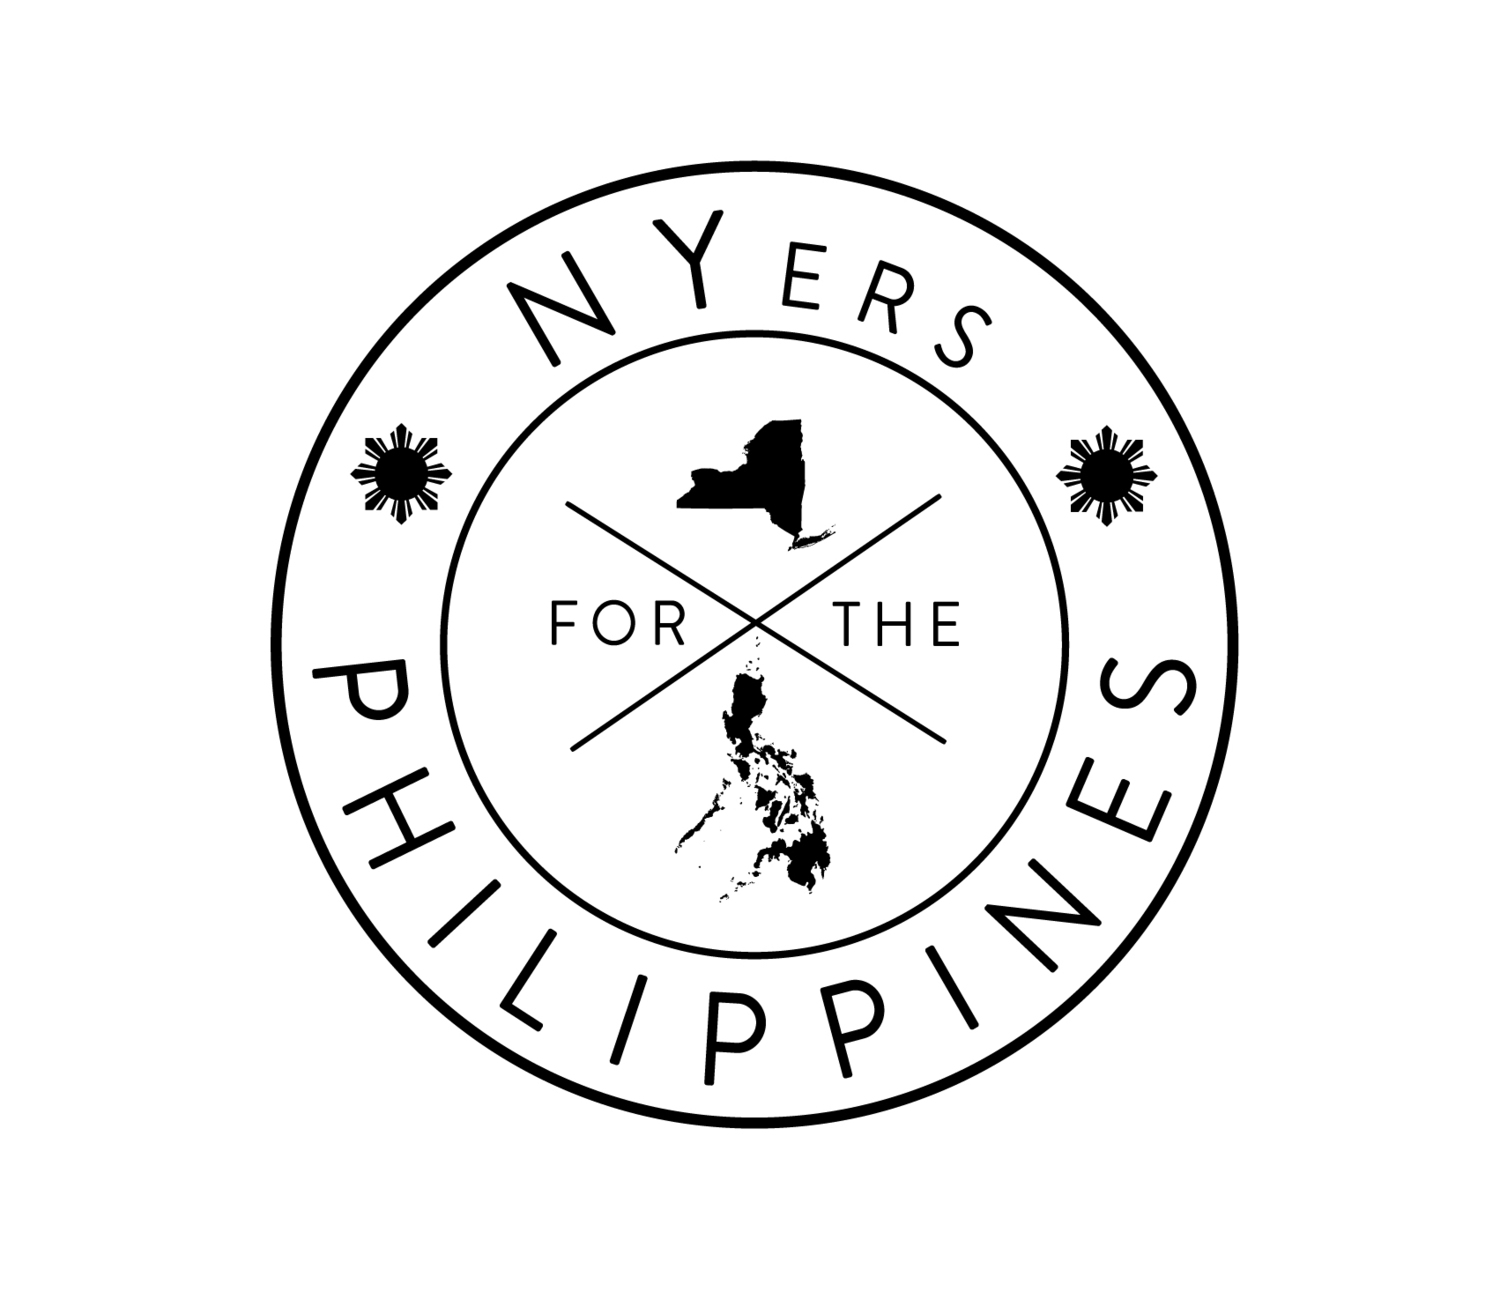 NYers For The Philippines